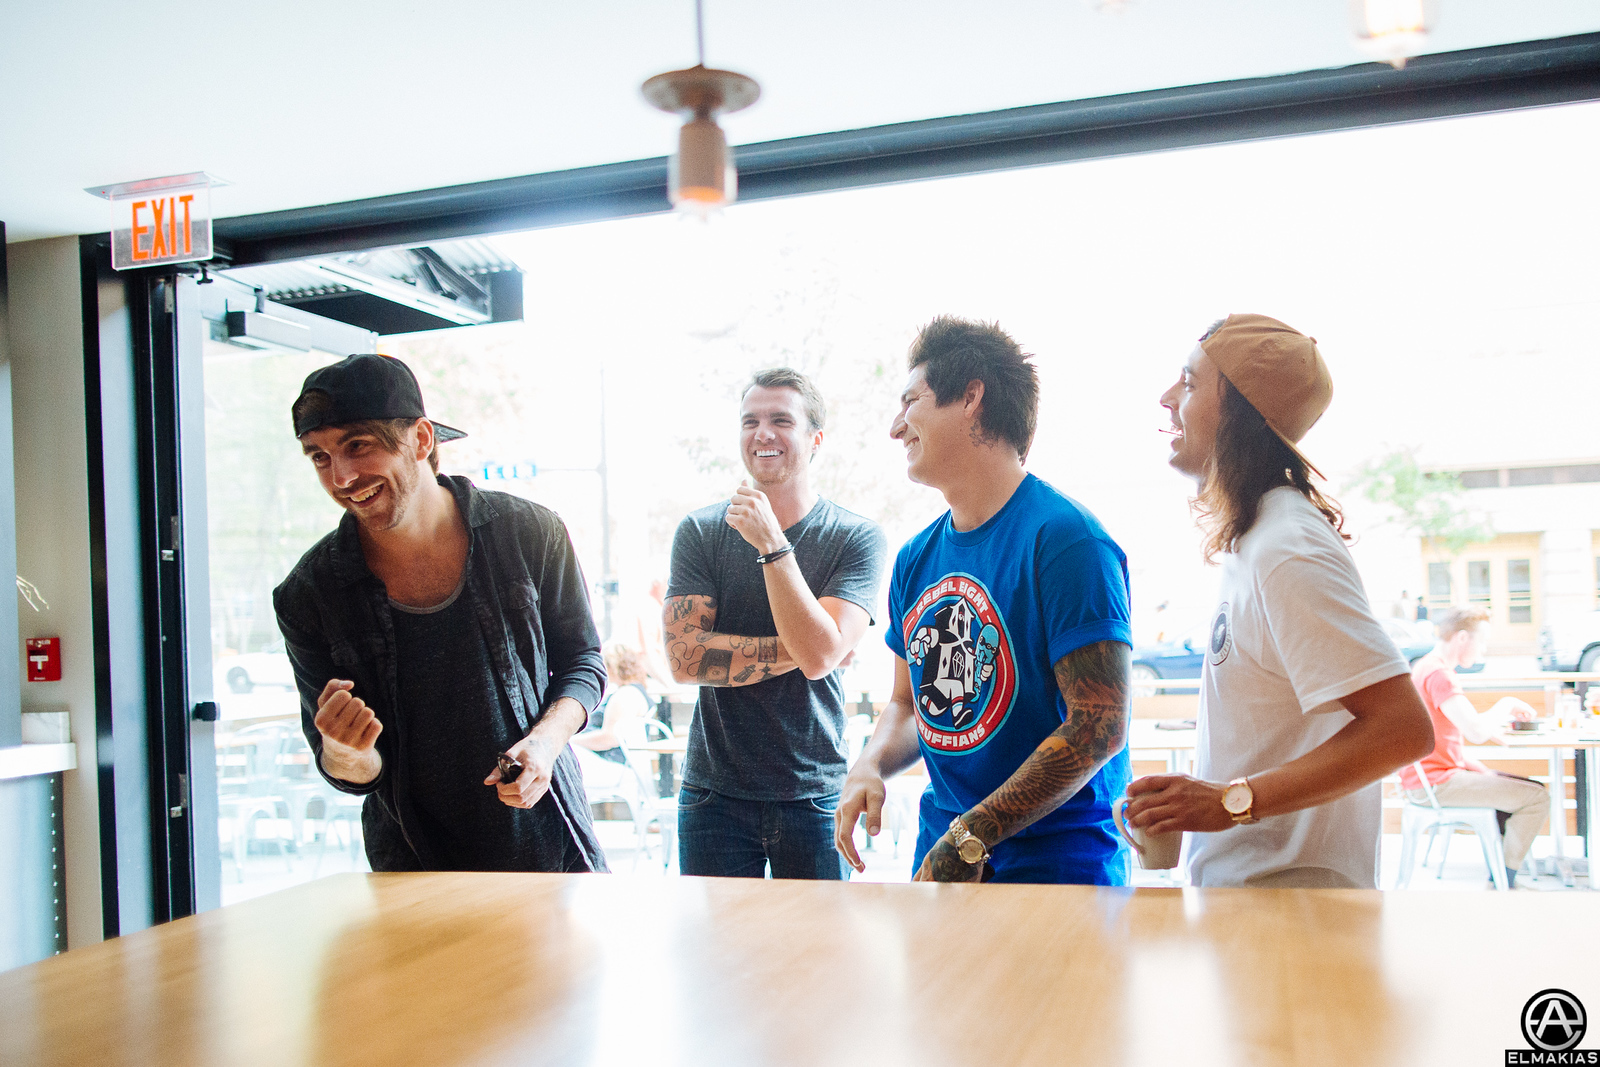 All Time Low and Pierce The Veil laughing at some youtube video